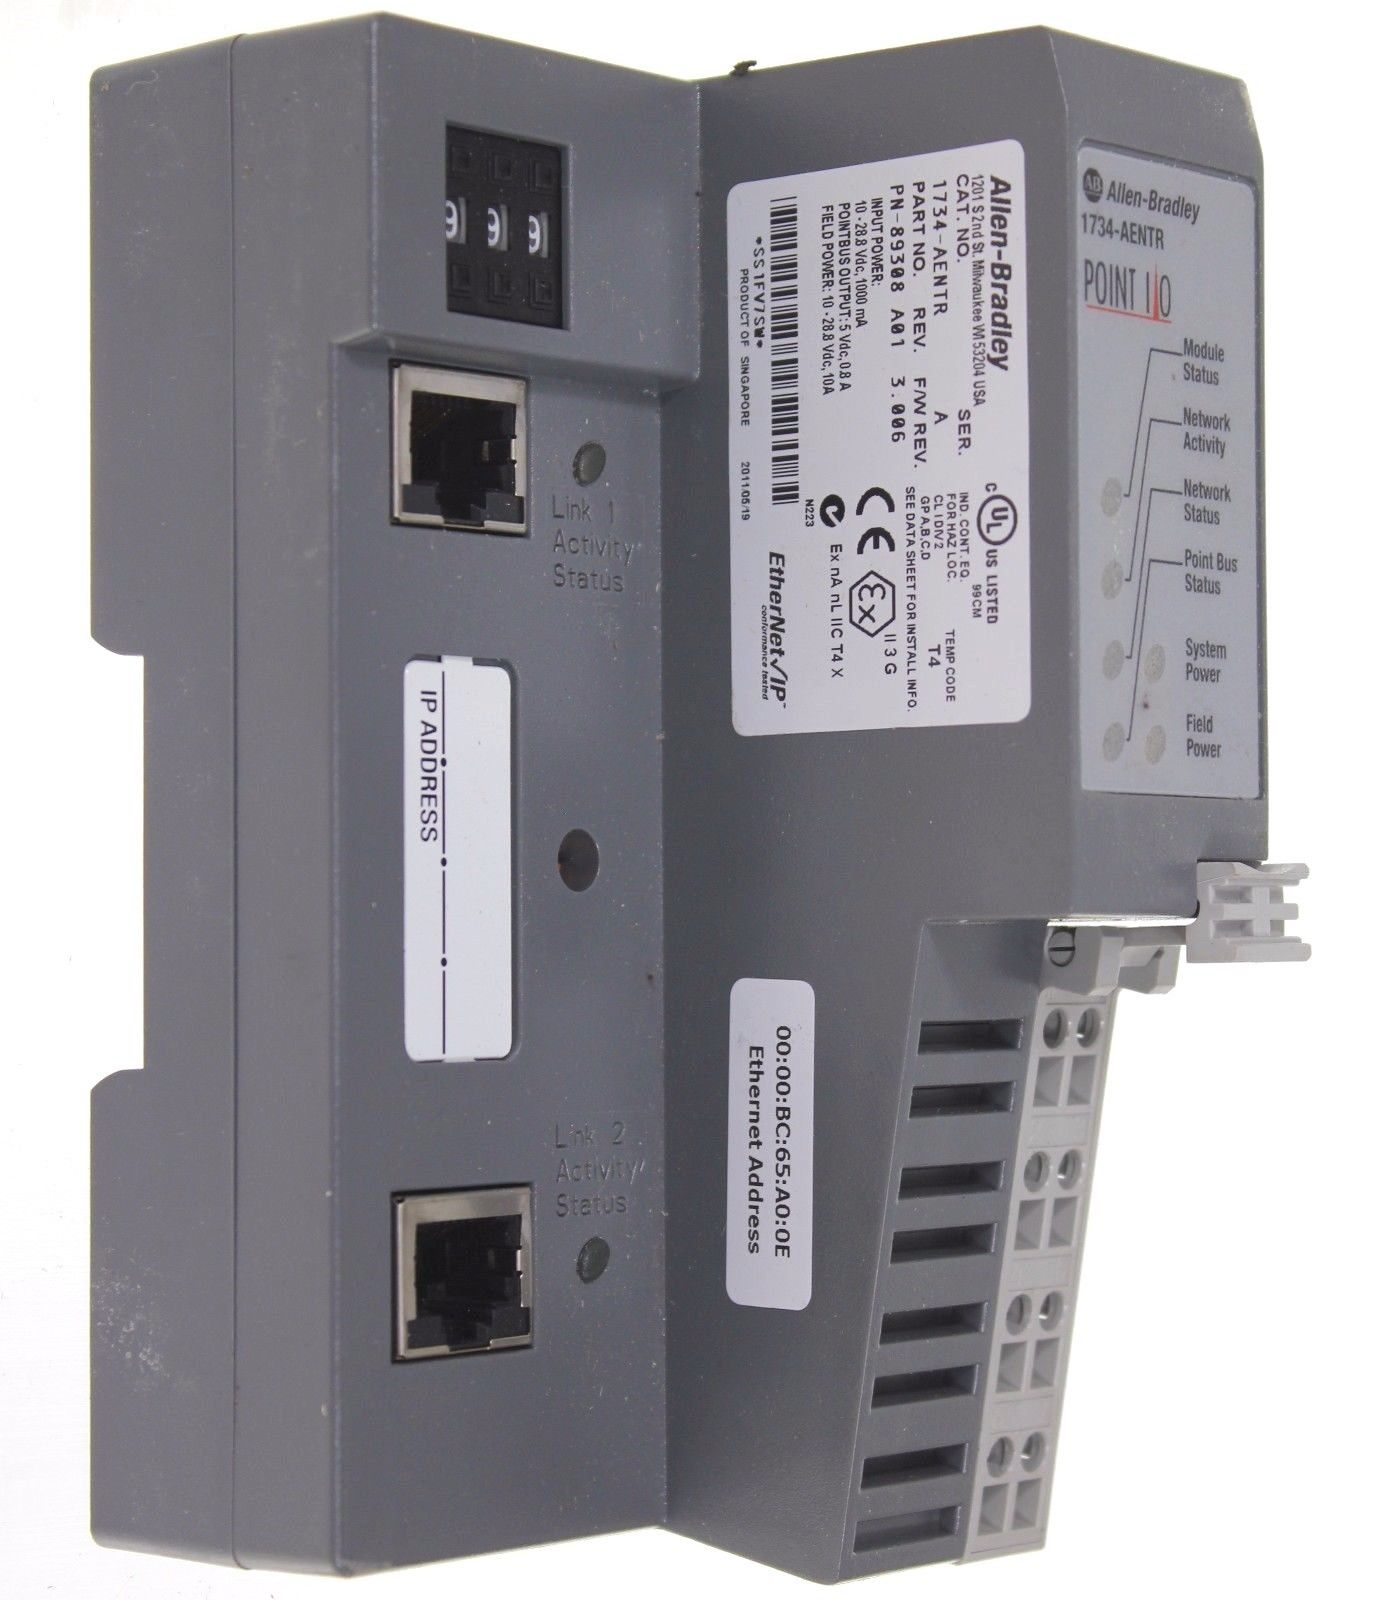 Allen Bradley 1734-AENTR /A  Point I/O Dual Port EtherNet Network Adaptor